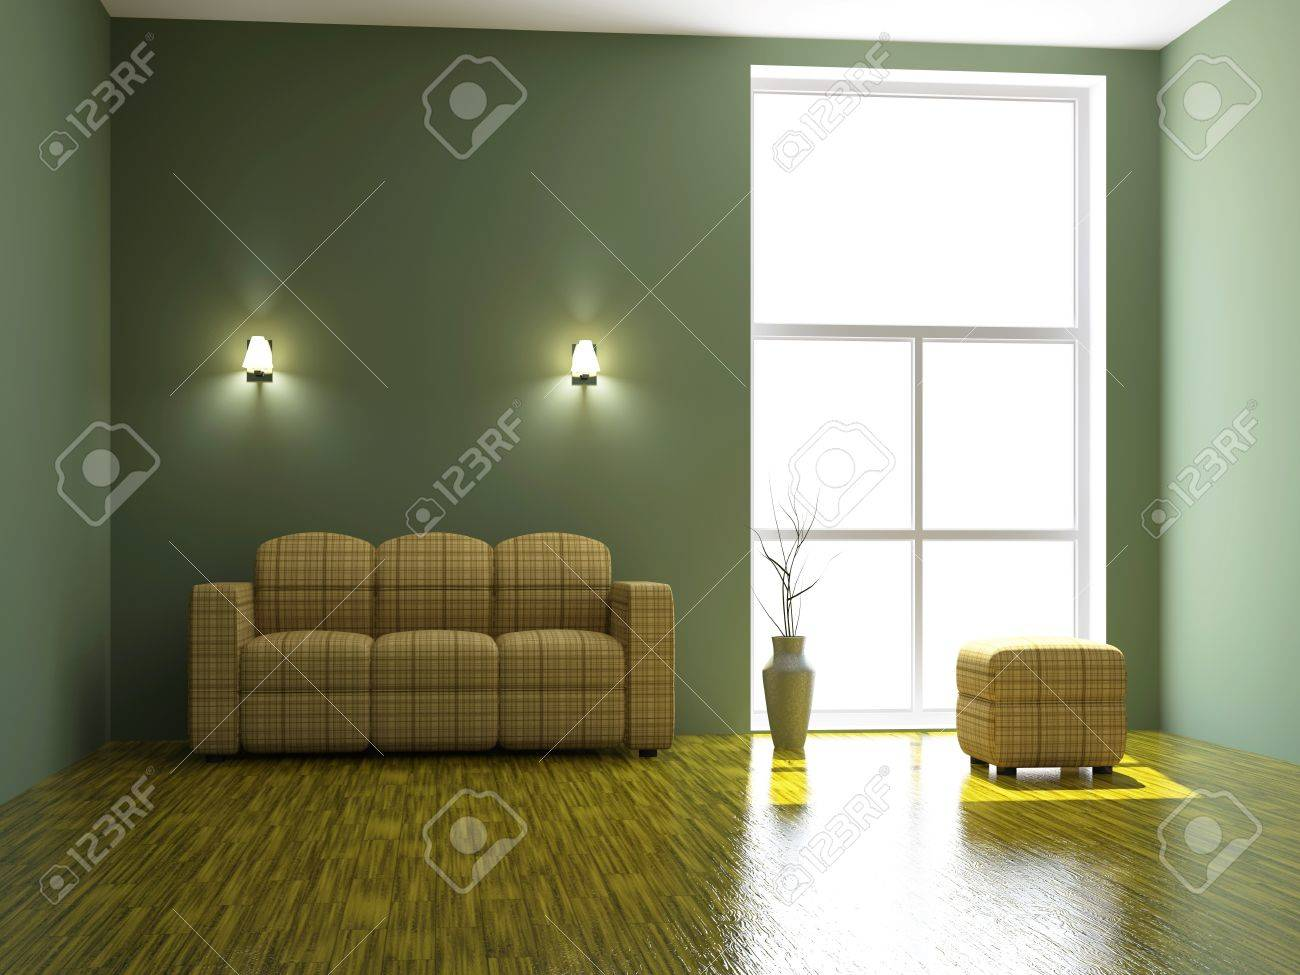 Sofa And A Vase Near The Big Window Stock Photo Picture And Royalty